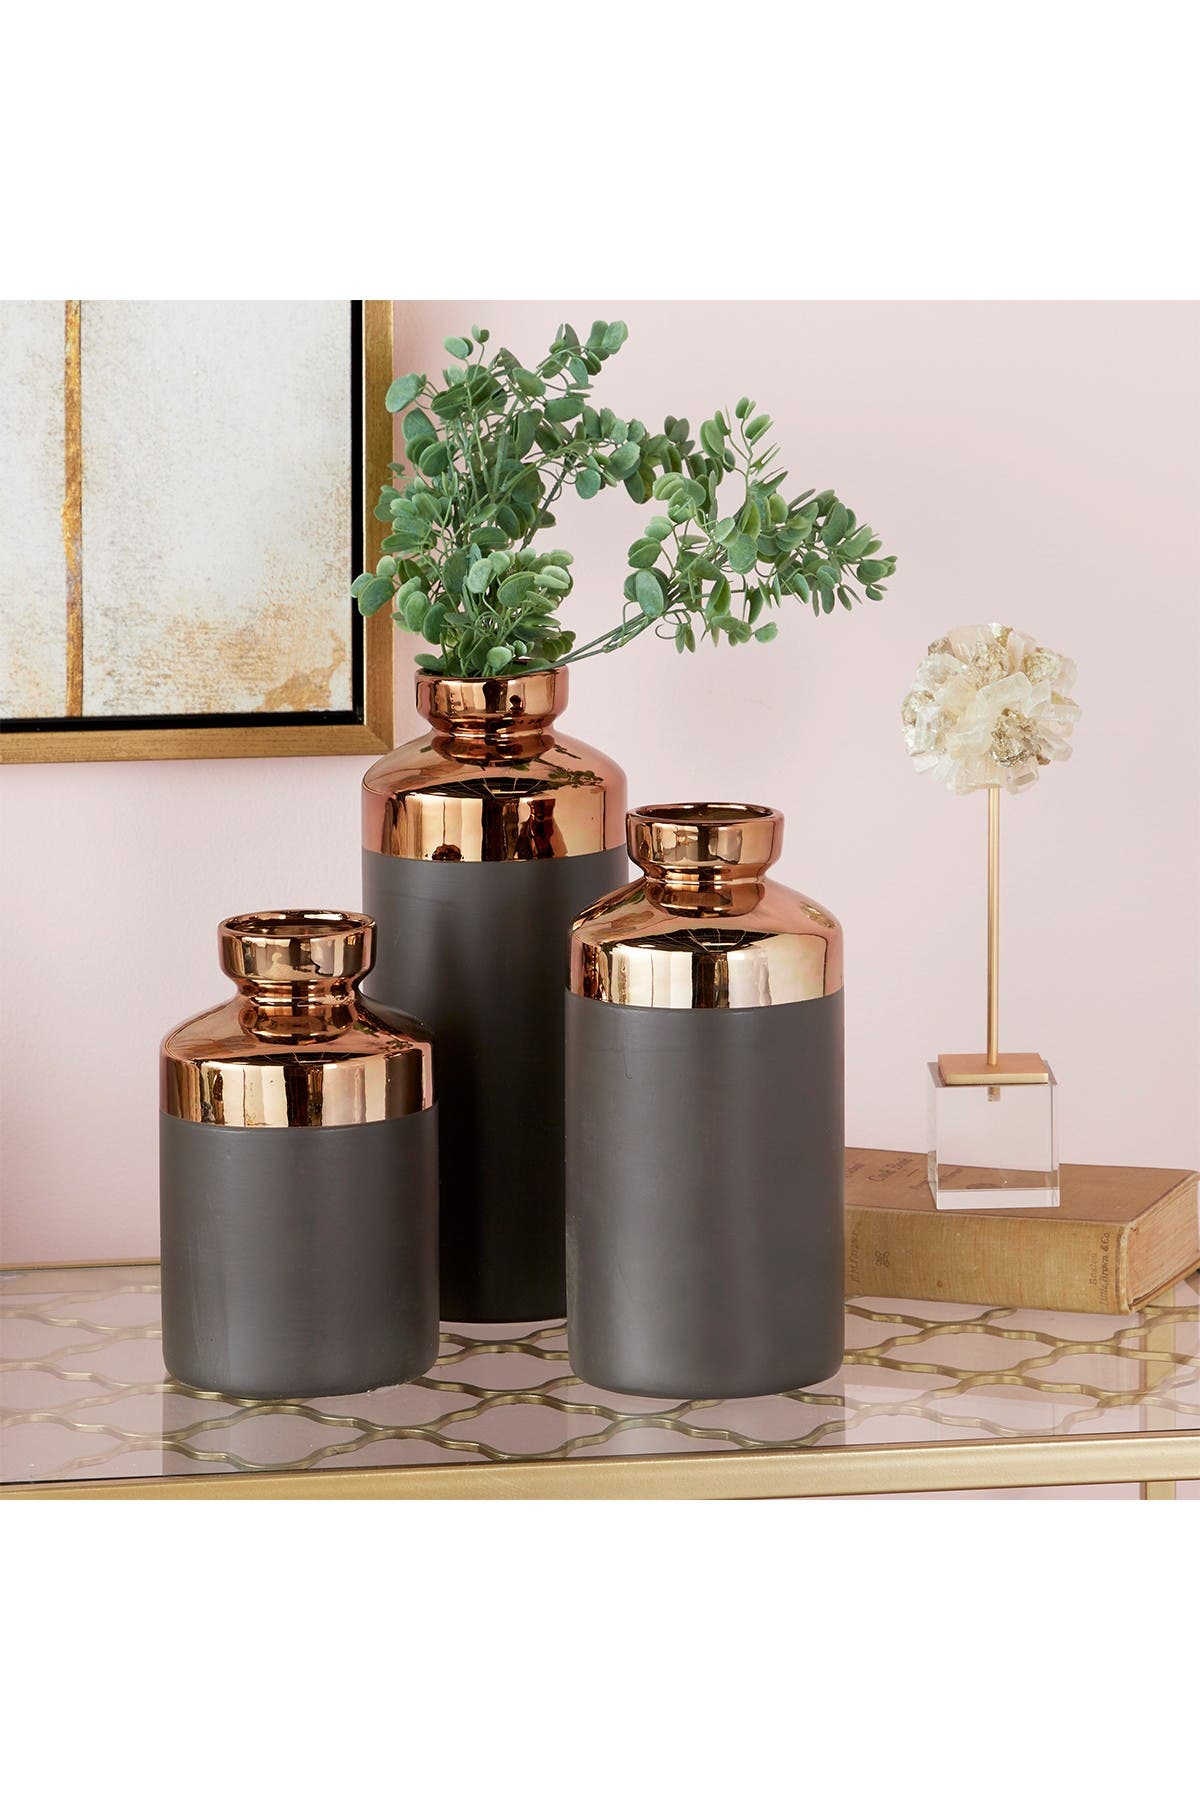 Image of CosmoLiving by Cosmopolitan Tall Cylinder Metallic Copper & Gray Decorative Vase - Set of 3